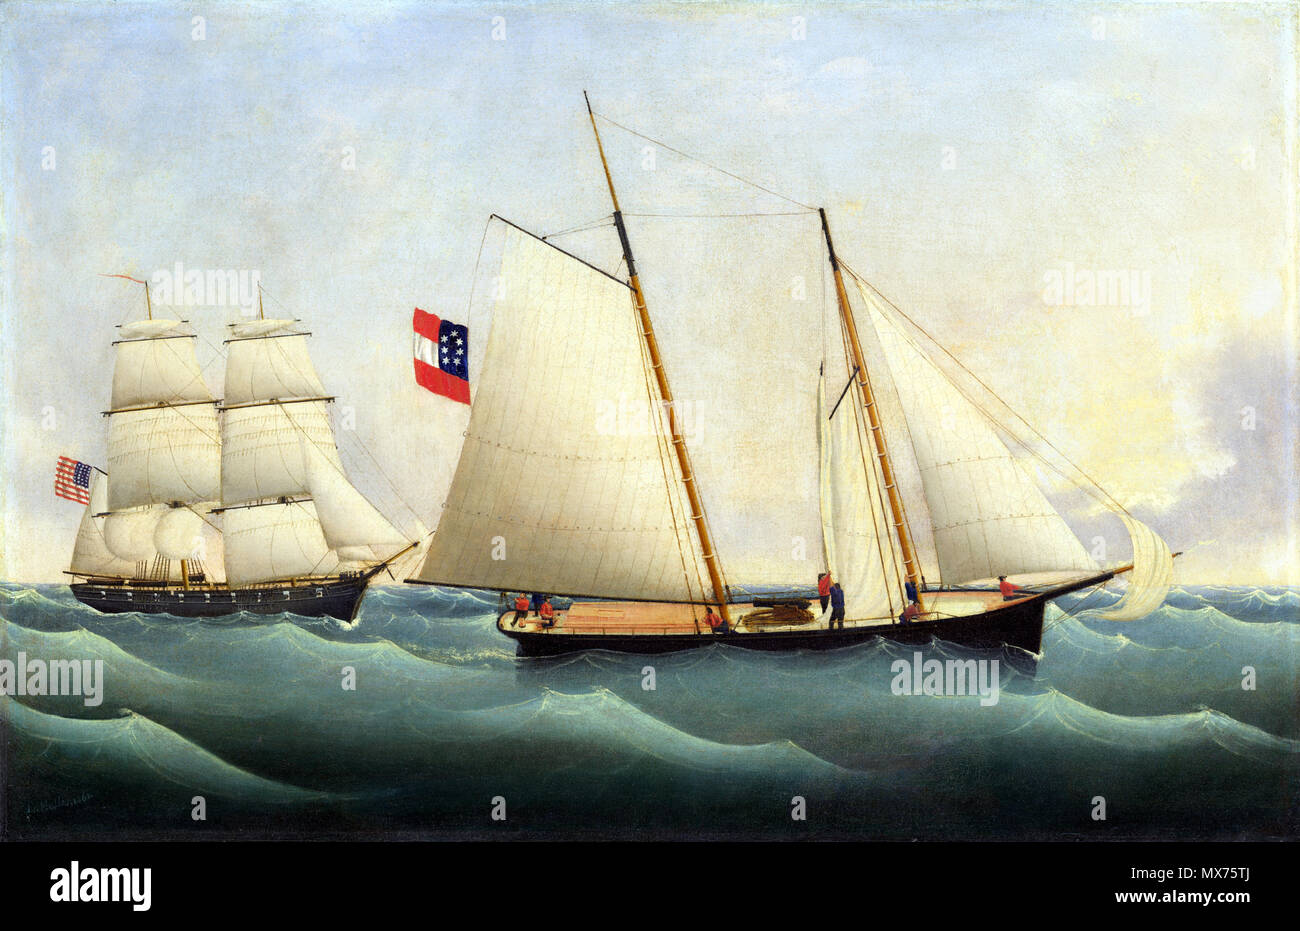 . Capture of the 'Savannah' by the 'U.S.S. Perry' .    Fritz Müller (1814–)  Description German painter and navy officer  Date of birth/death 1814 after 1861  Location of birth Blumenthal  Authority control  : Q20888900 VIAF:300471465    American, 1814 - 1861 or after . 1861 112 Capture of the Savannah by the U.S.S. Perry A14285Stock Photo